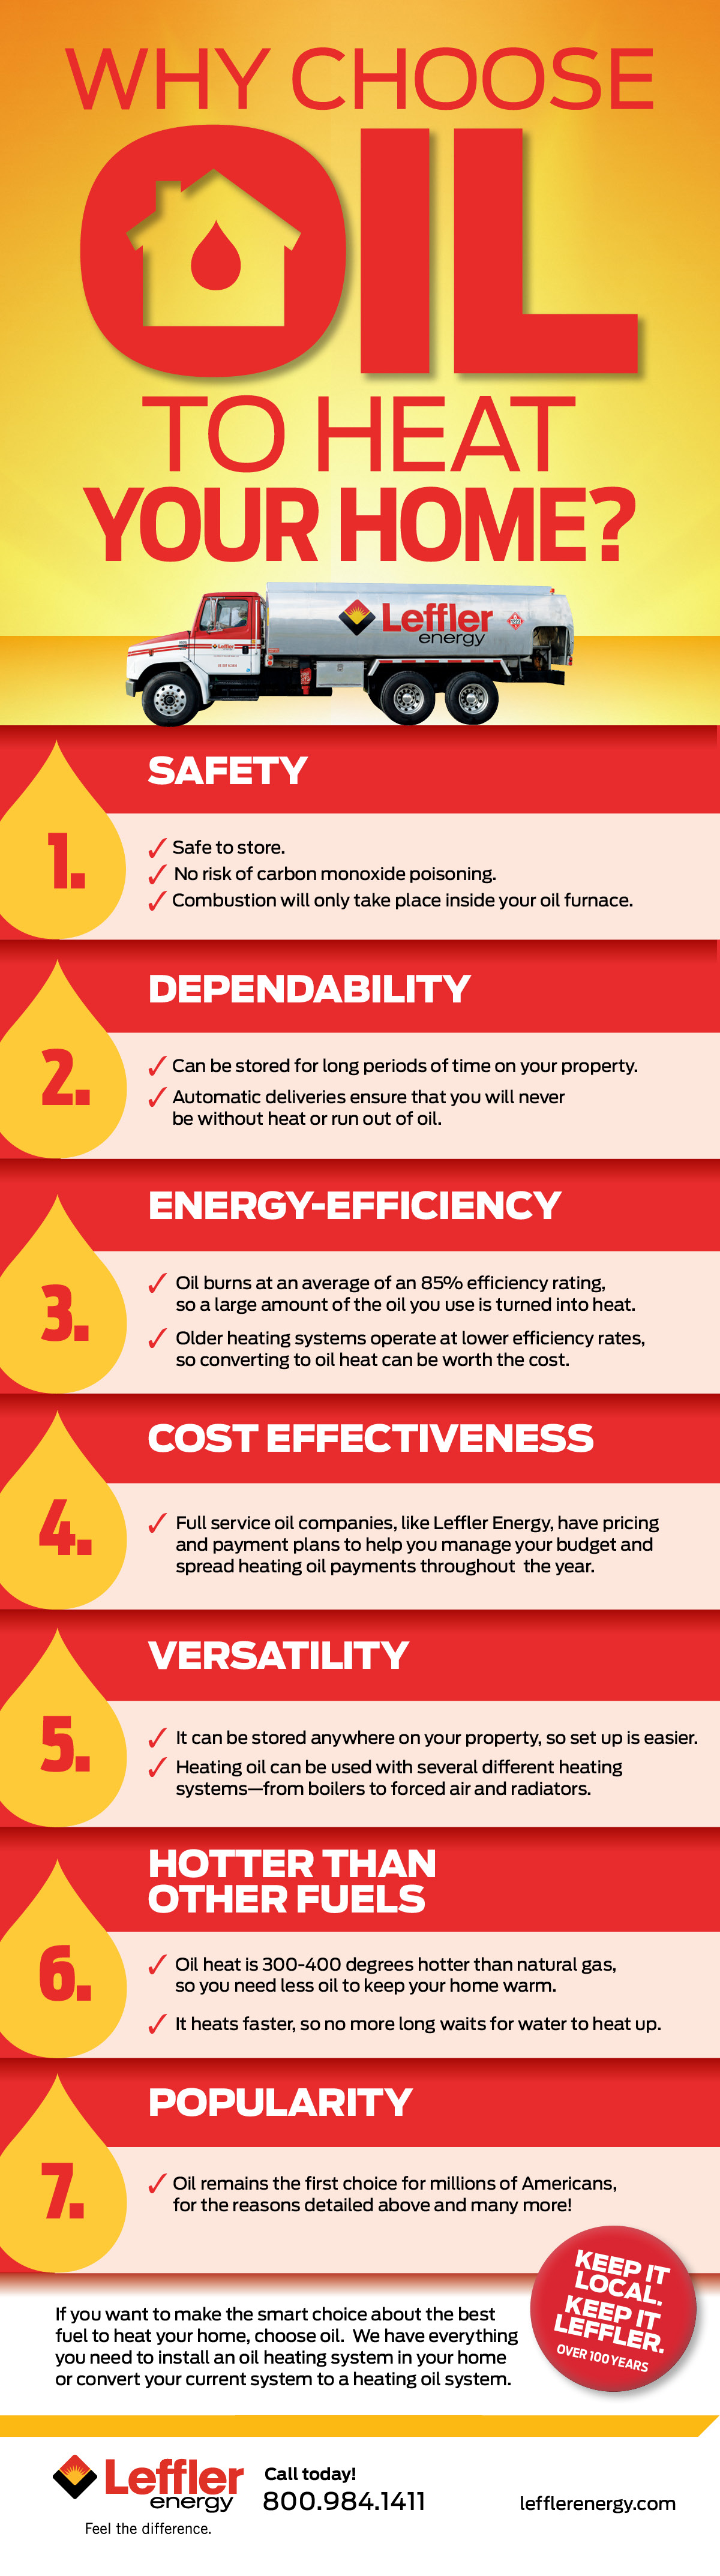 The benefits of home heating oil